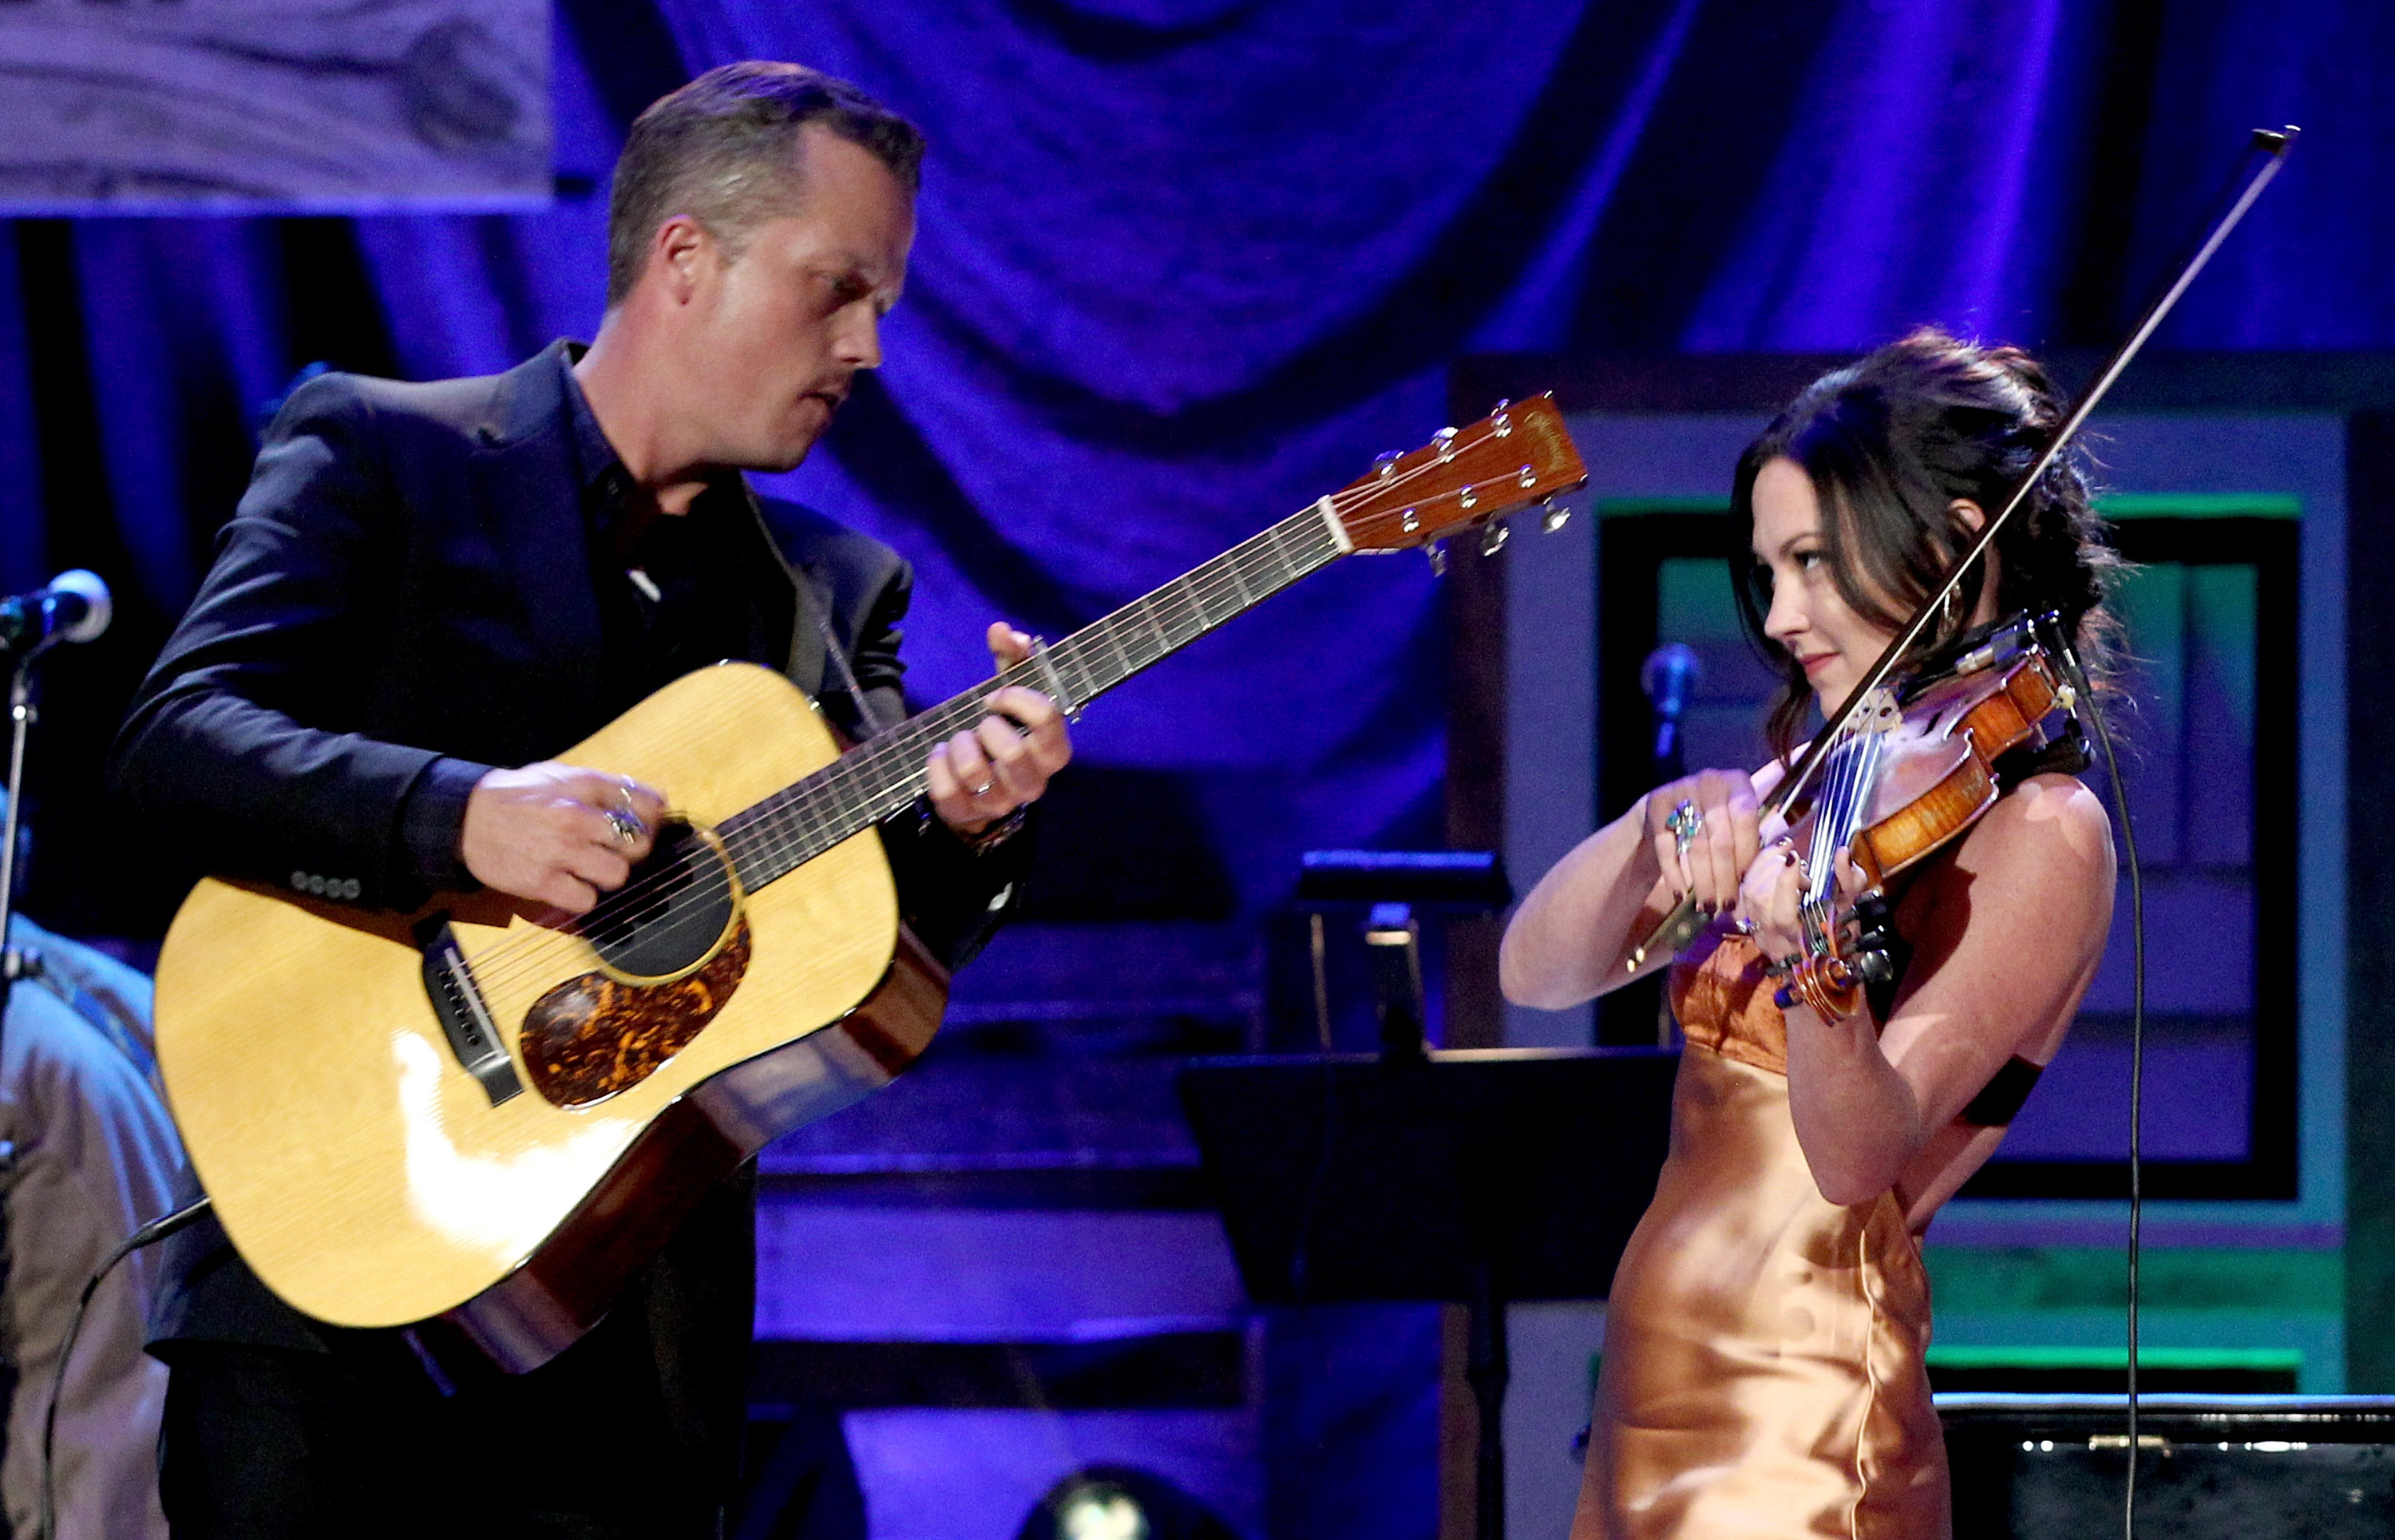 Jason with guitar and Amanda with violin performing